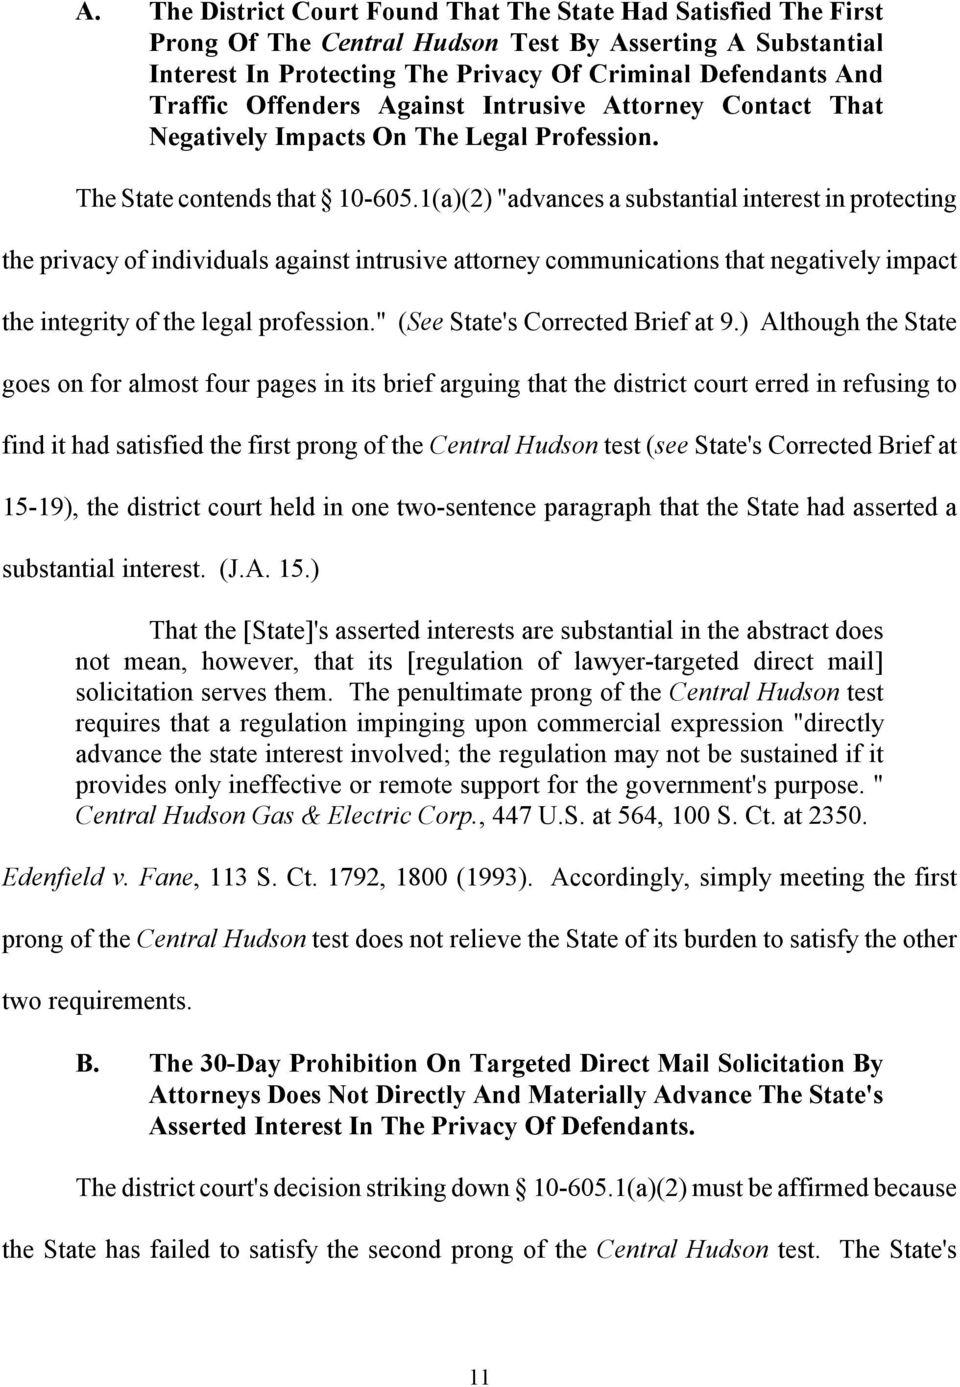 "1(a)(2) ""advances a substantial interest in protecting the privacy of individuals against intrusive attorney communications that negatively impact the integrity of the legal profession."